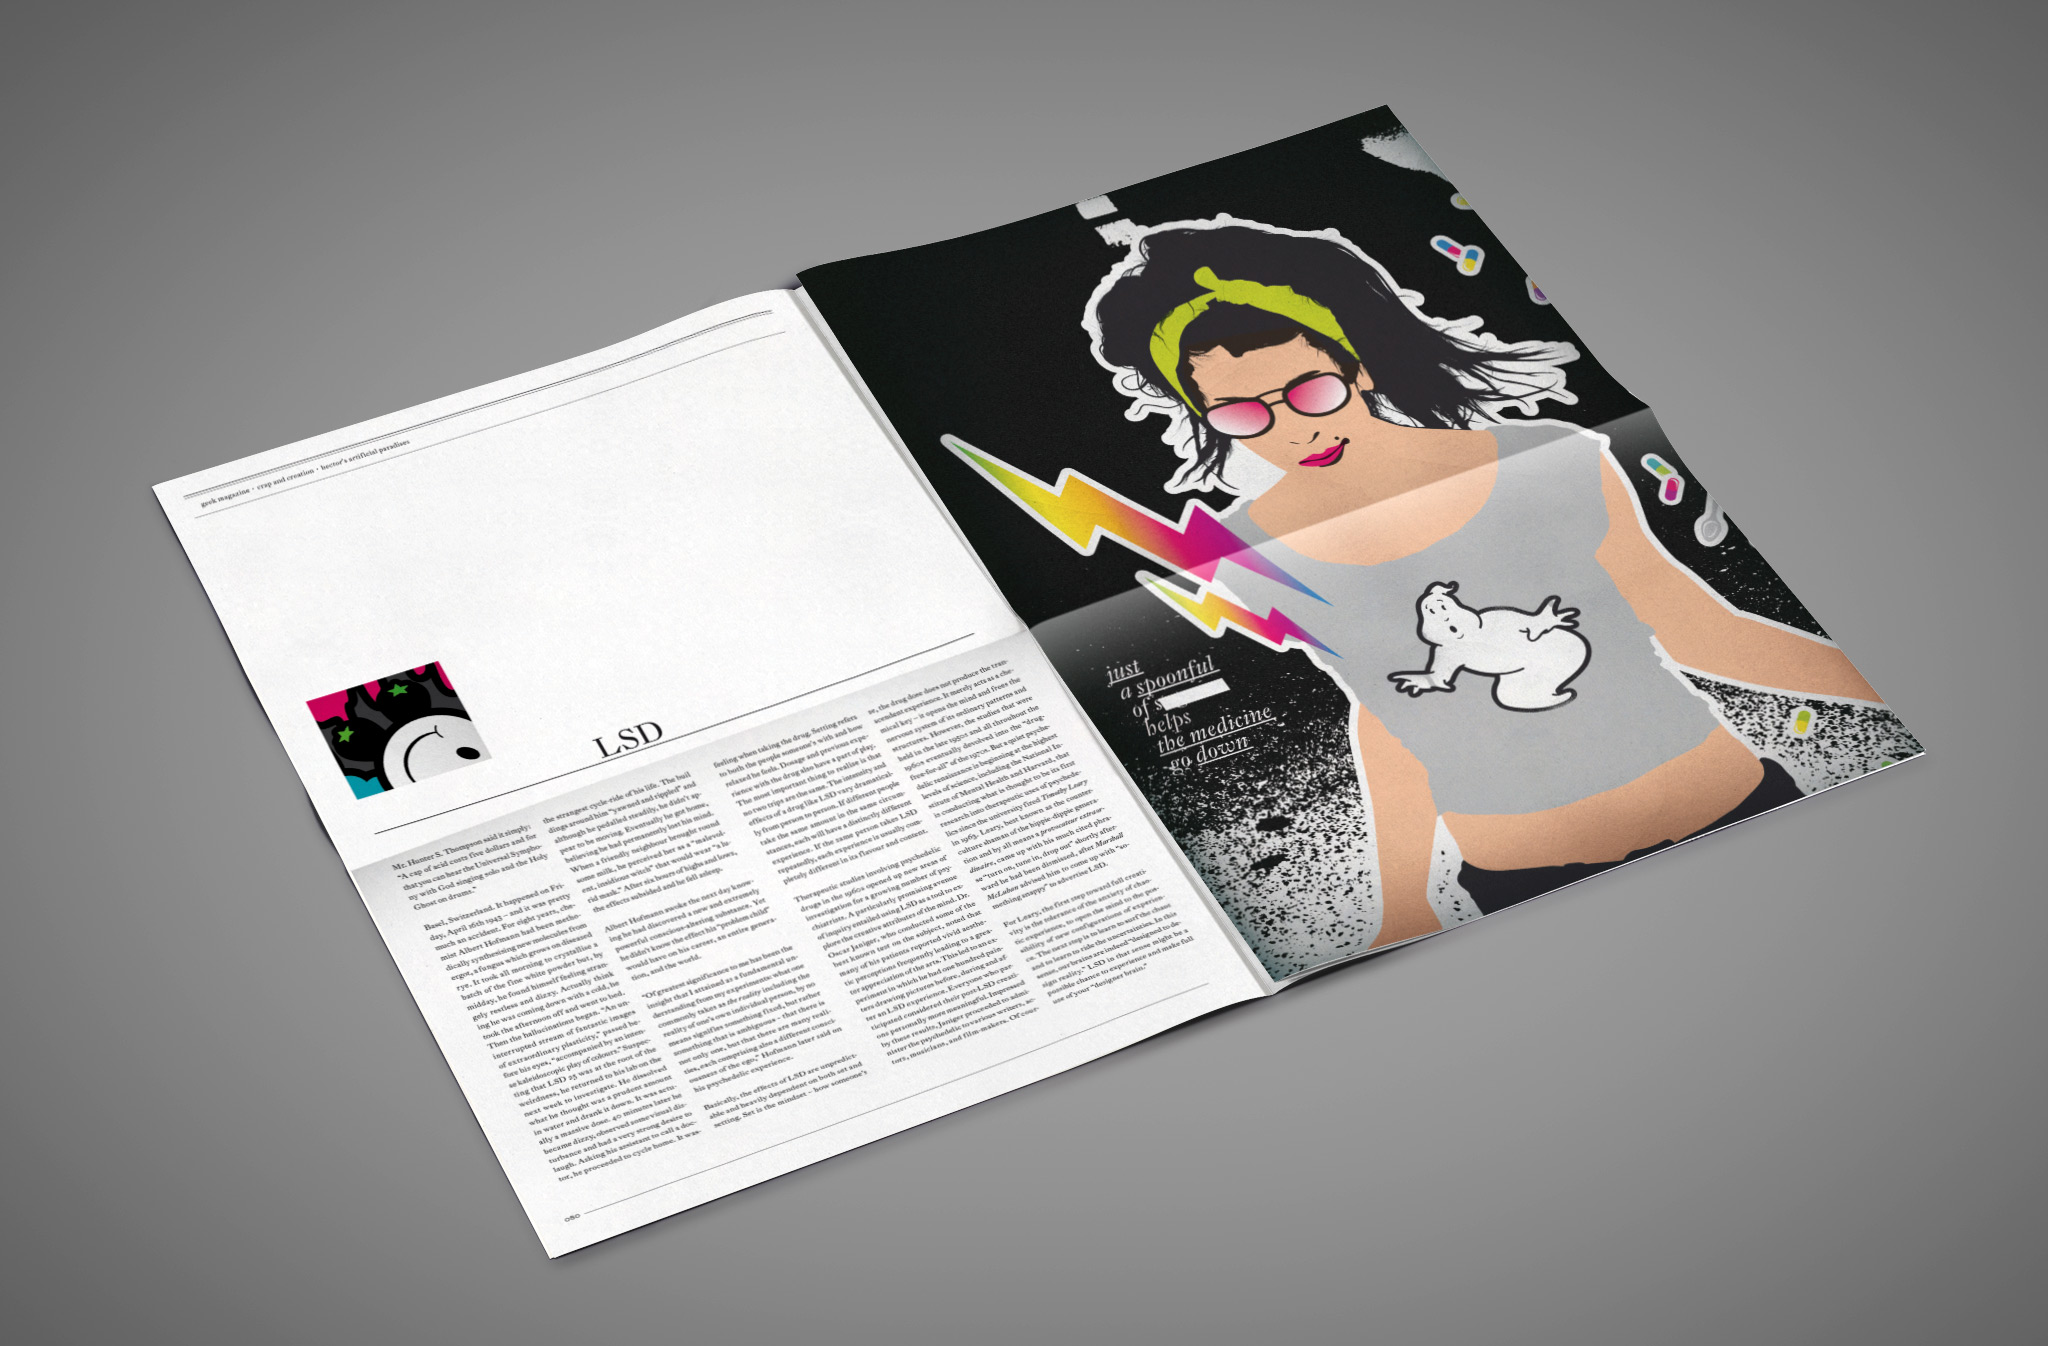 Geek Magazine | Design und Illustration: Johannes Willwacher